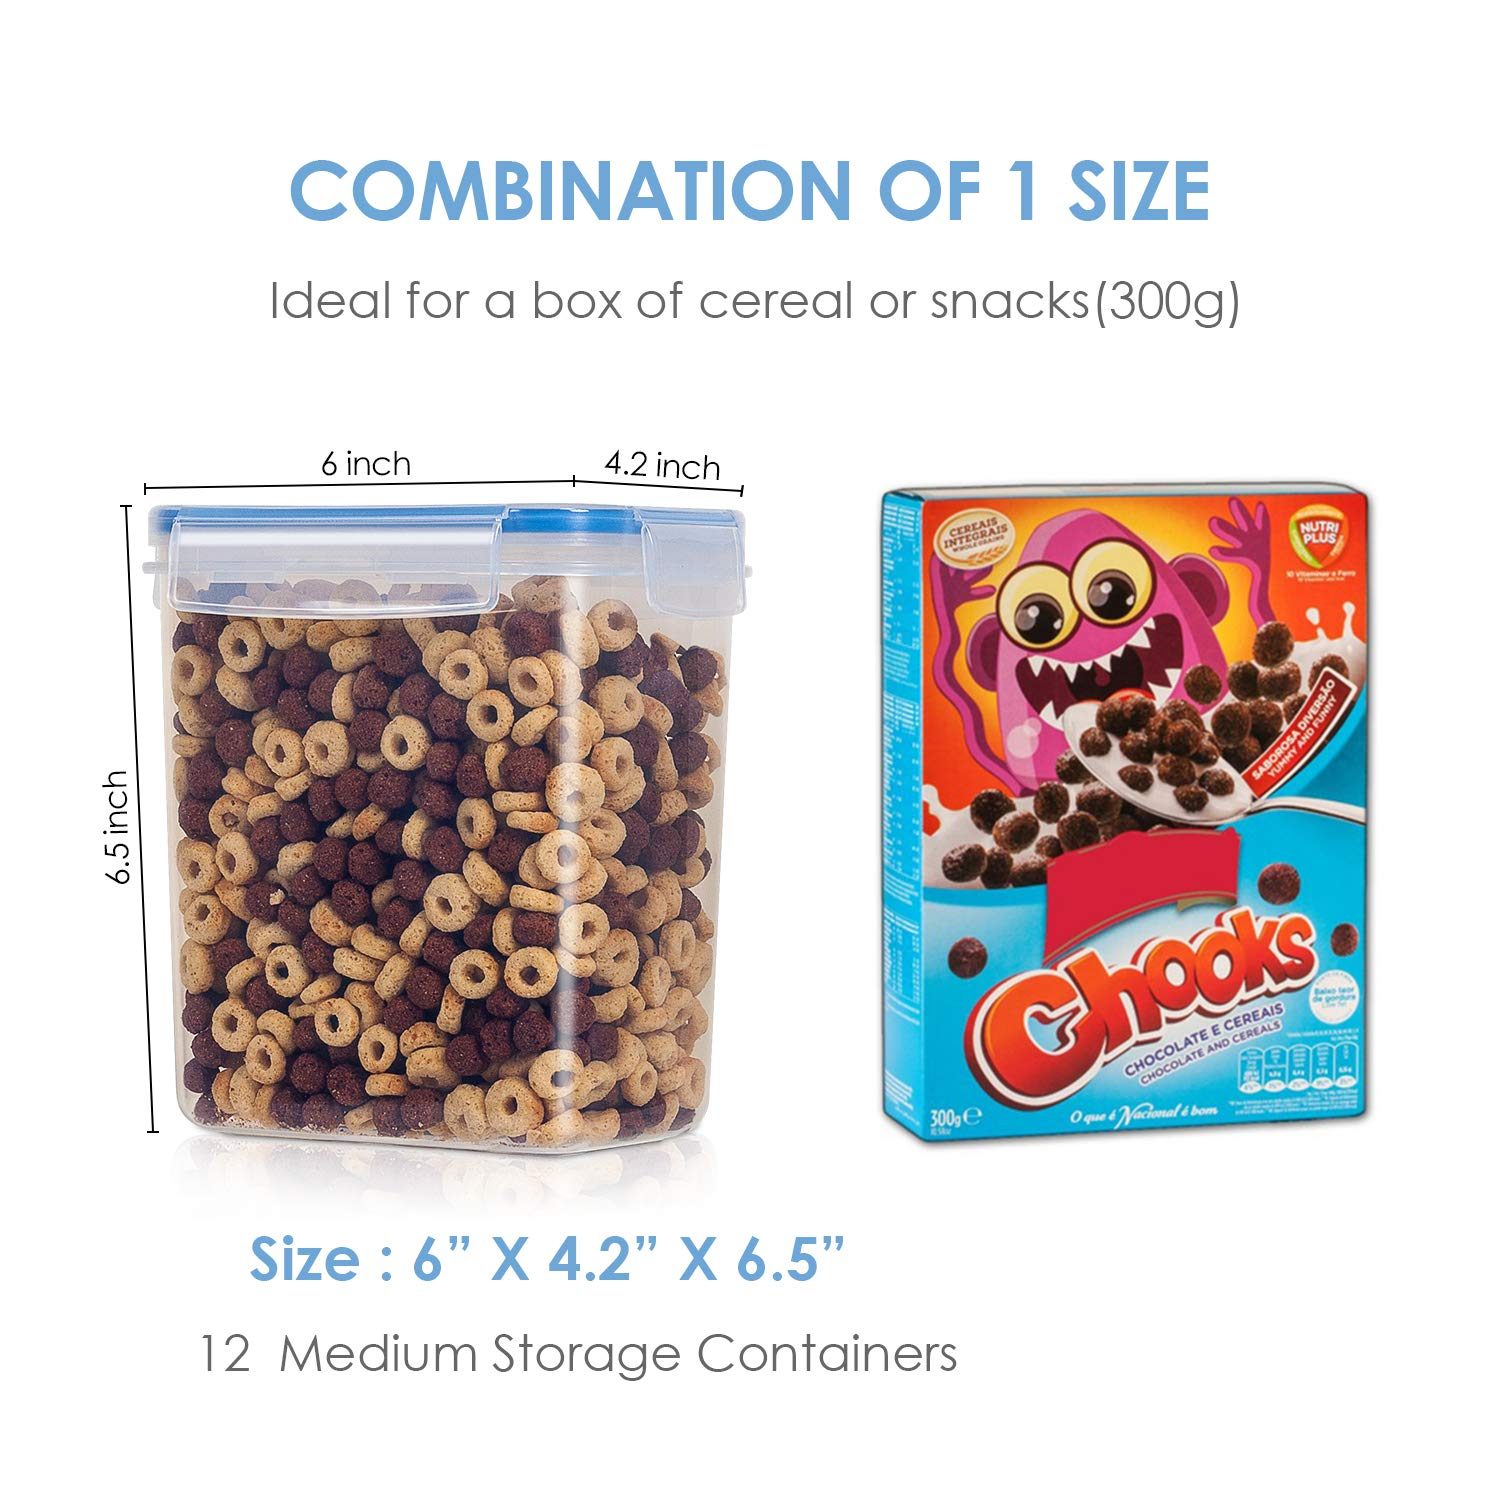 Vtopmart Airtight Food Storage Containers 12 Pieces - Plastic PBA Free Kitchen Pantry Storage Containers for Sugar,Flour and Baking Supplies - Dishwasher Safe - 24 Chalkboard Labels and 1 Marker by Vtopmart (Image #4)